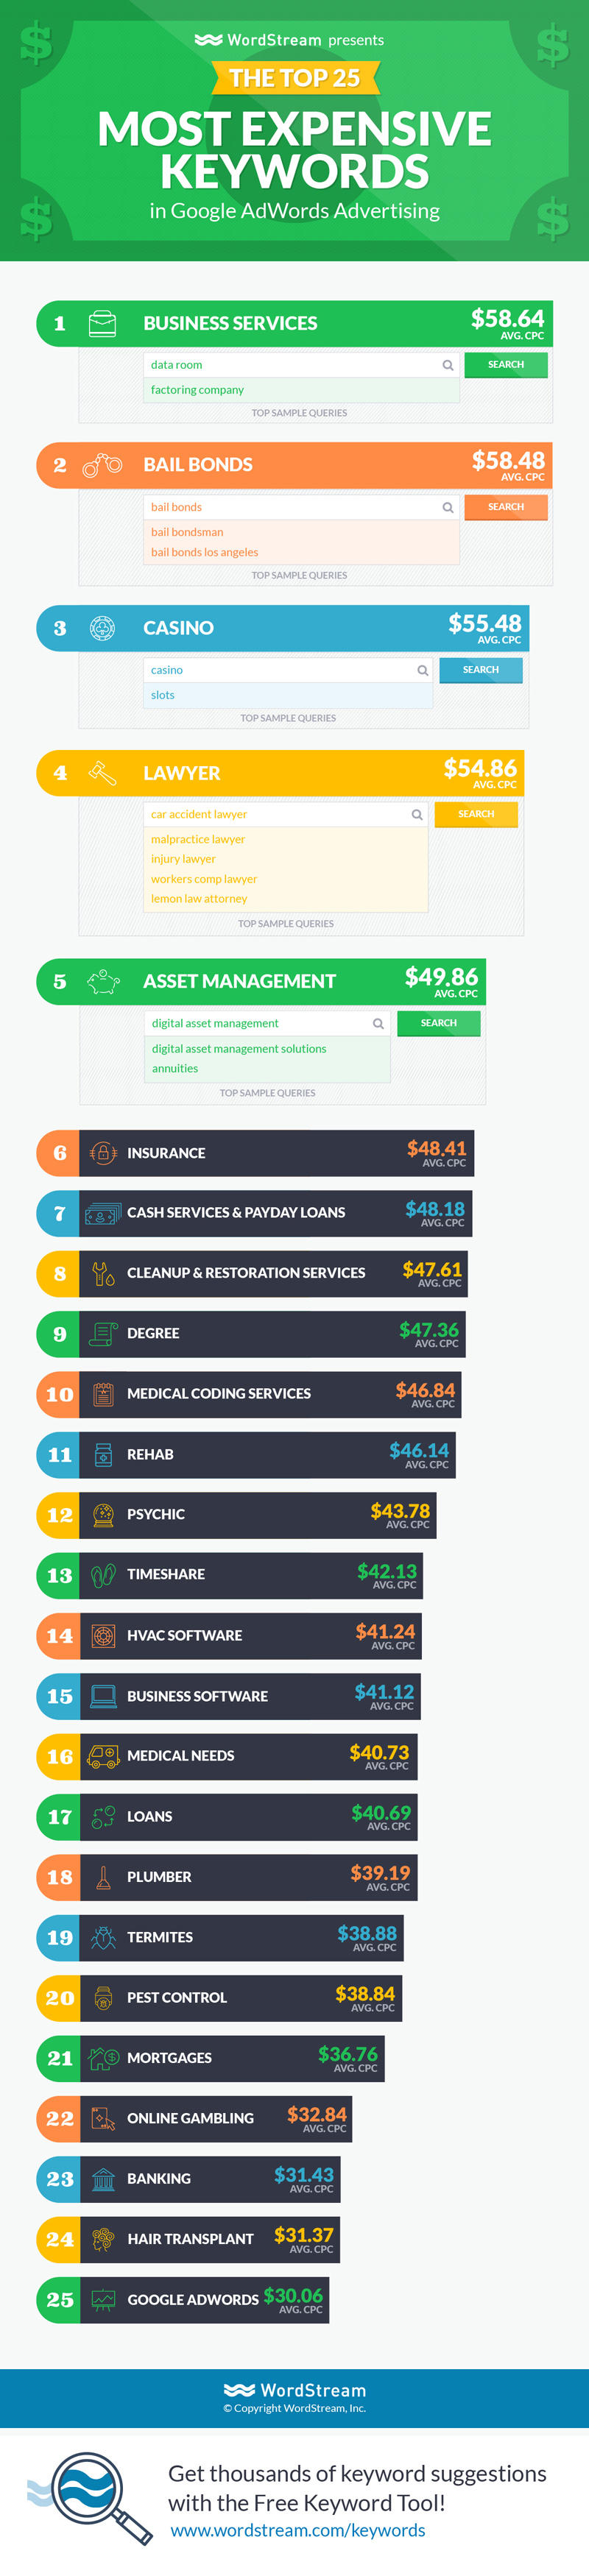 most expensive keywords in google adwords